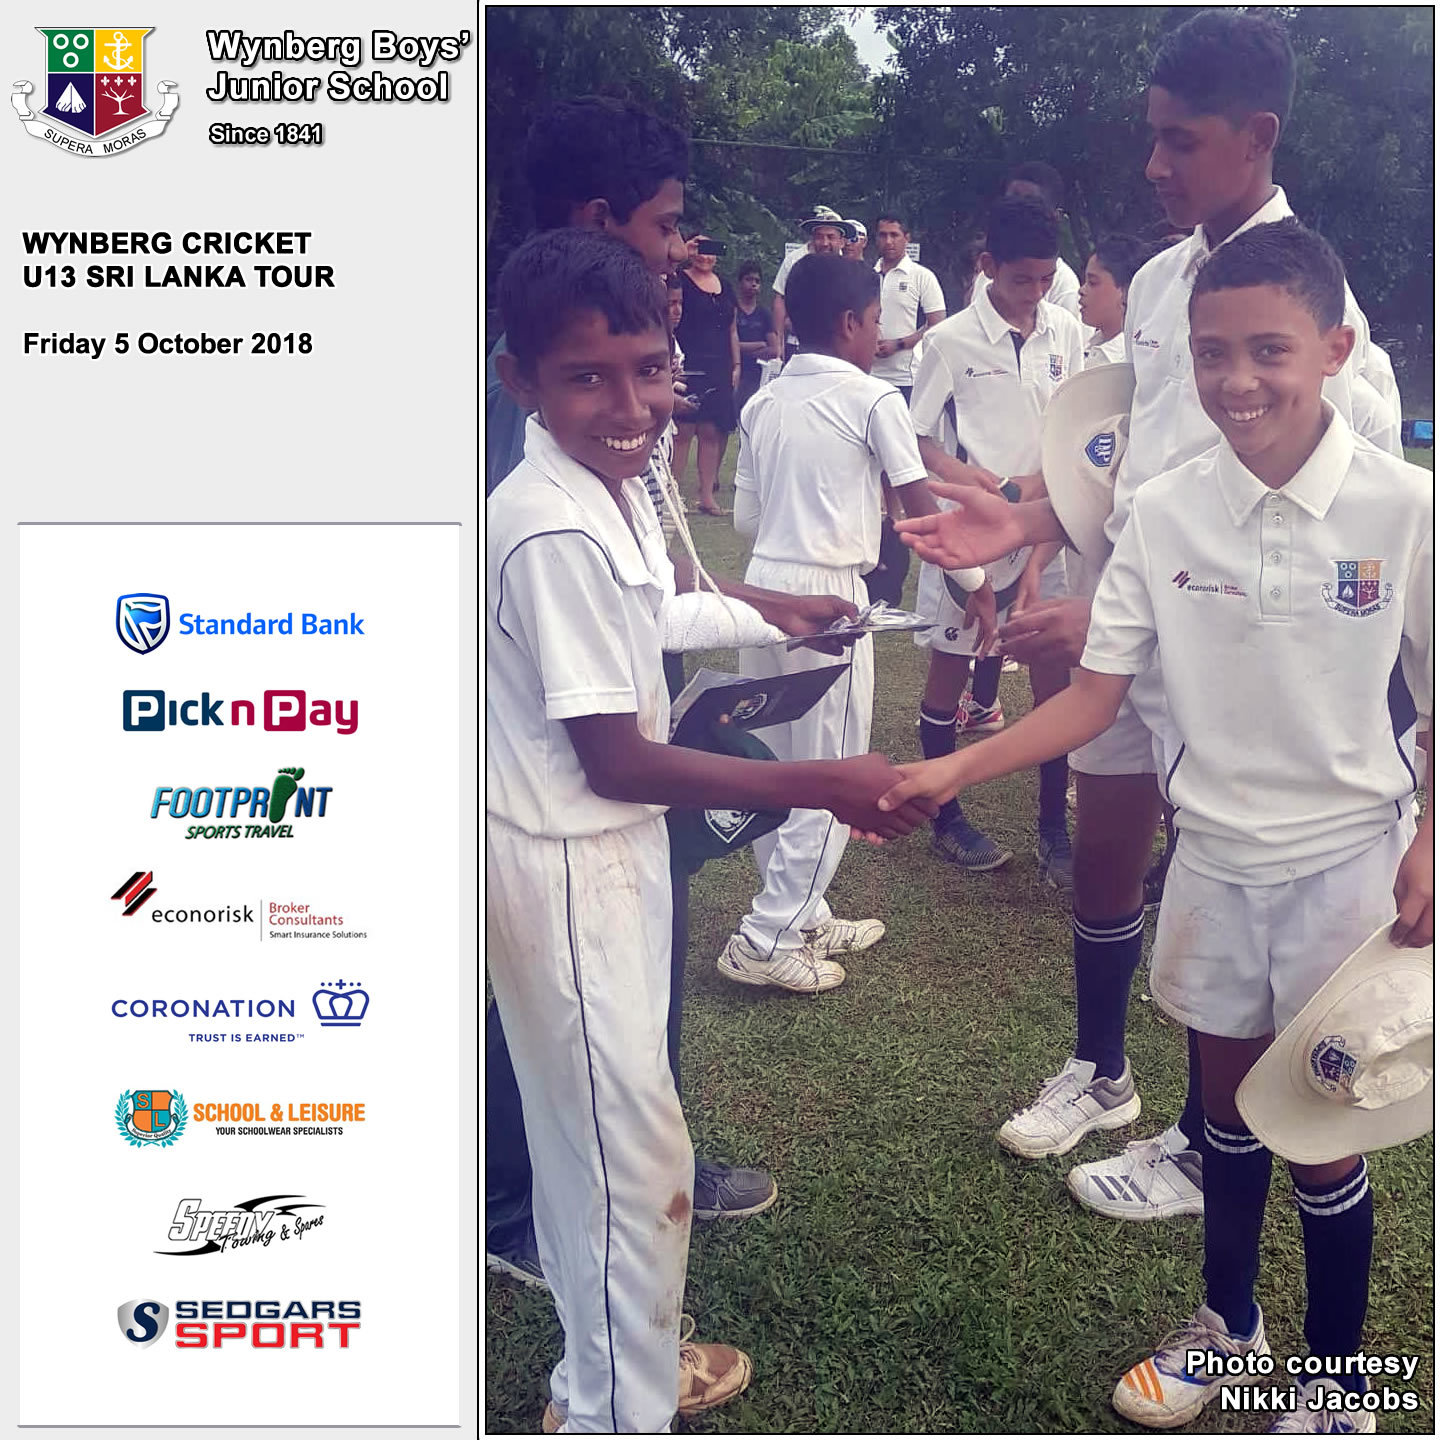 Day 5: Wynberg clinches a win against St John's College, Friday 5 October 2018